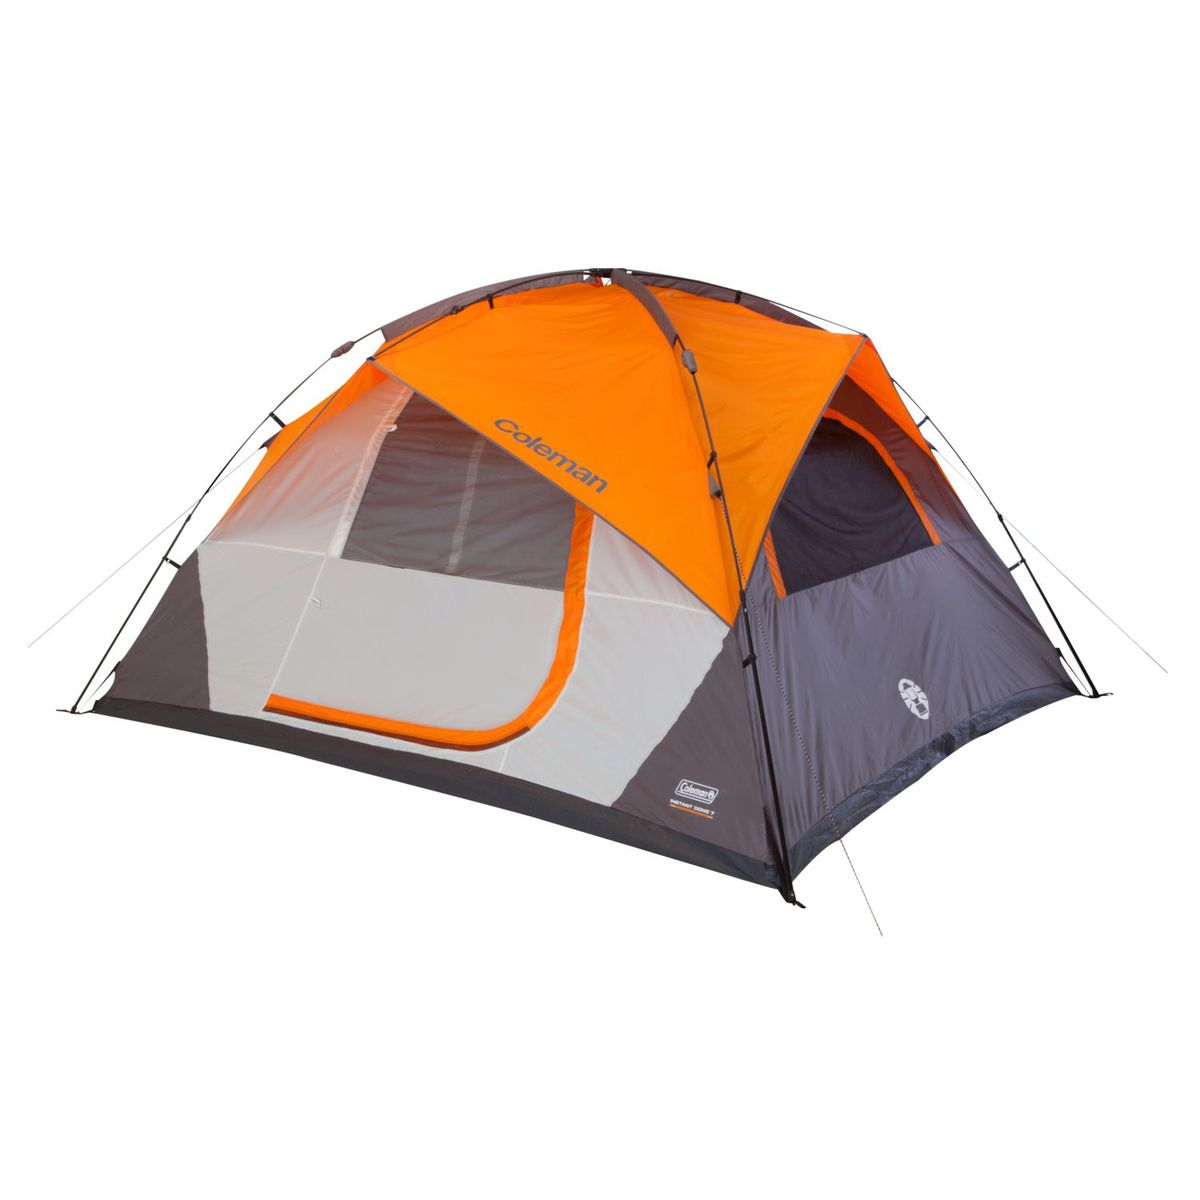 Coleman Instant Dome 7 Man Tent - Orange. Loading zoom  sc 1 st  Takealot.com & Coleman Instant Dome 7 Man Tent - Orange | Buy Online in South ...